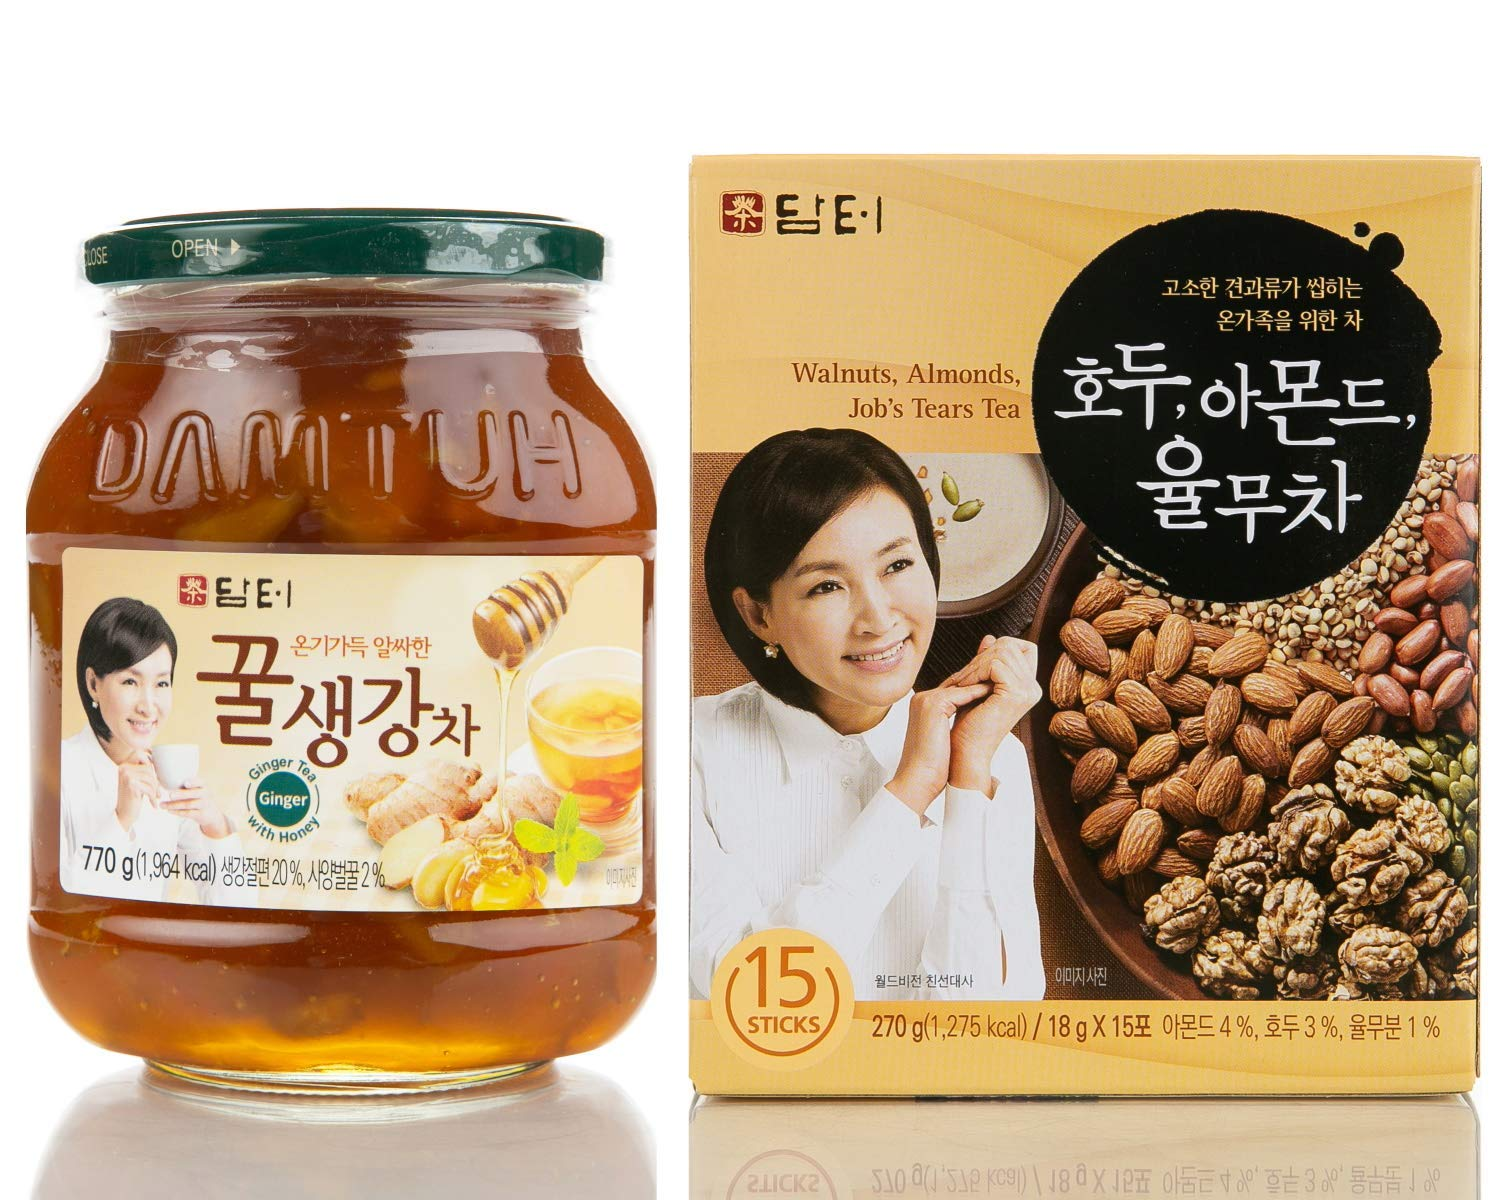 Damtuh Korean Honey Tea, Ginger with Honey 27.16 oz + Walnut Almond Adlay Tea (Job's Tear) 15 Sticks